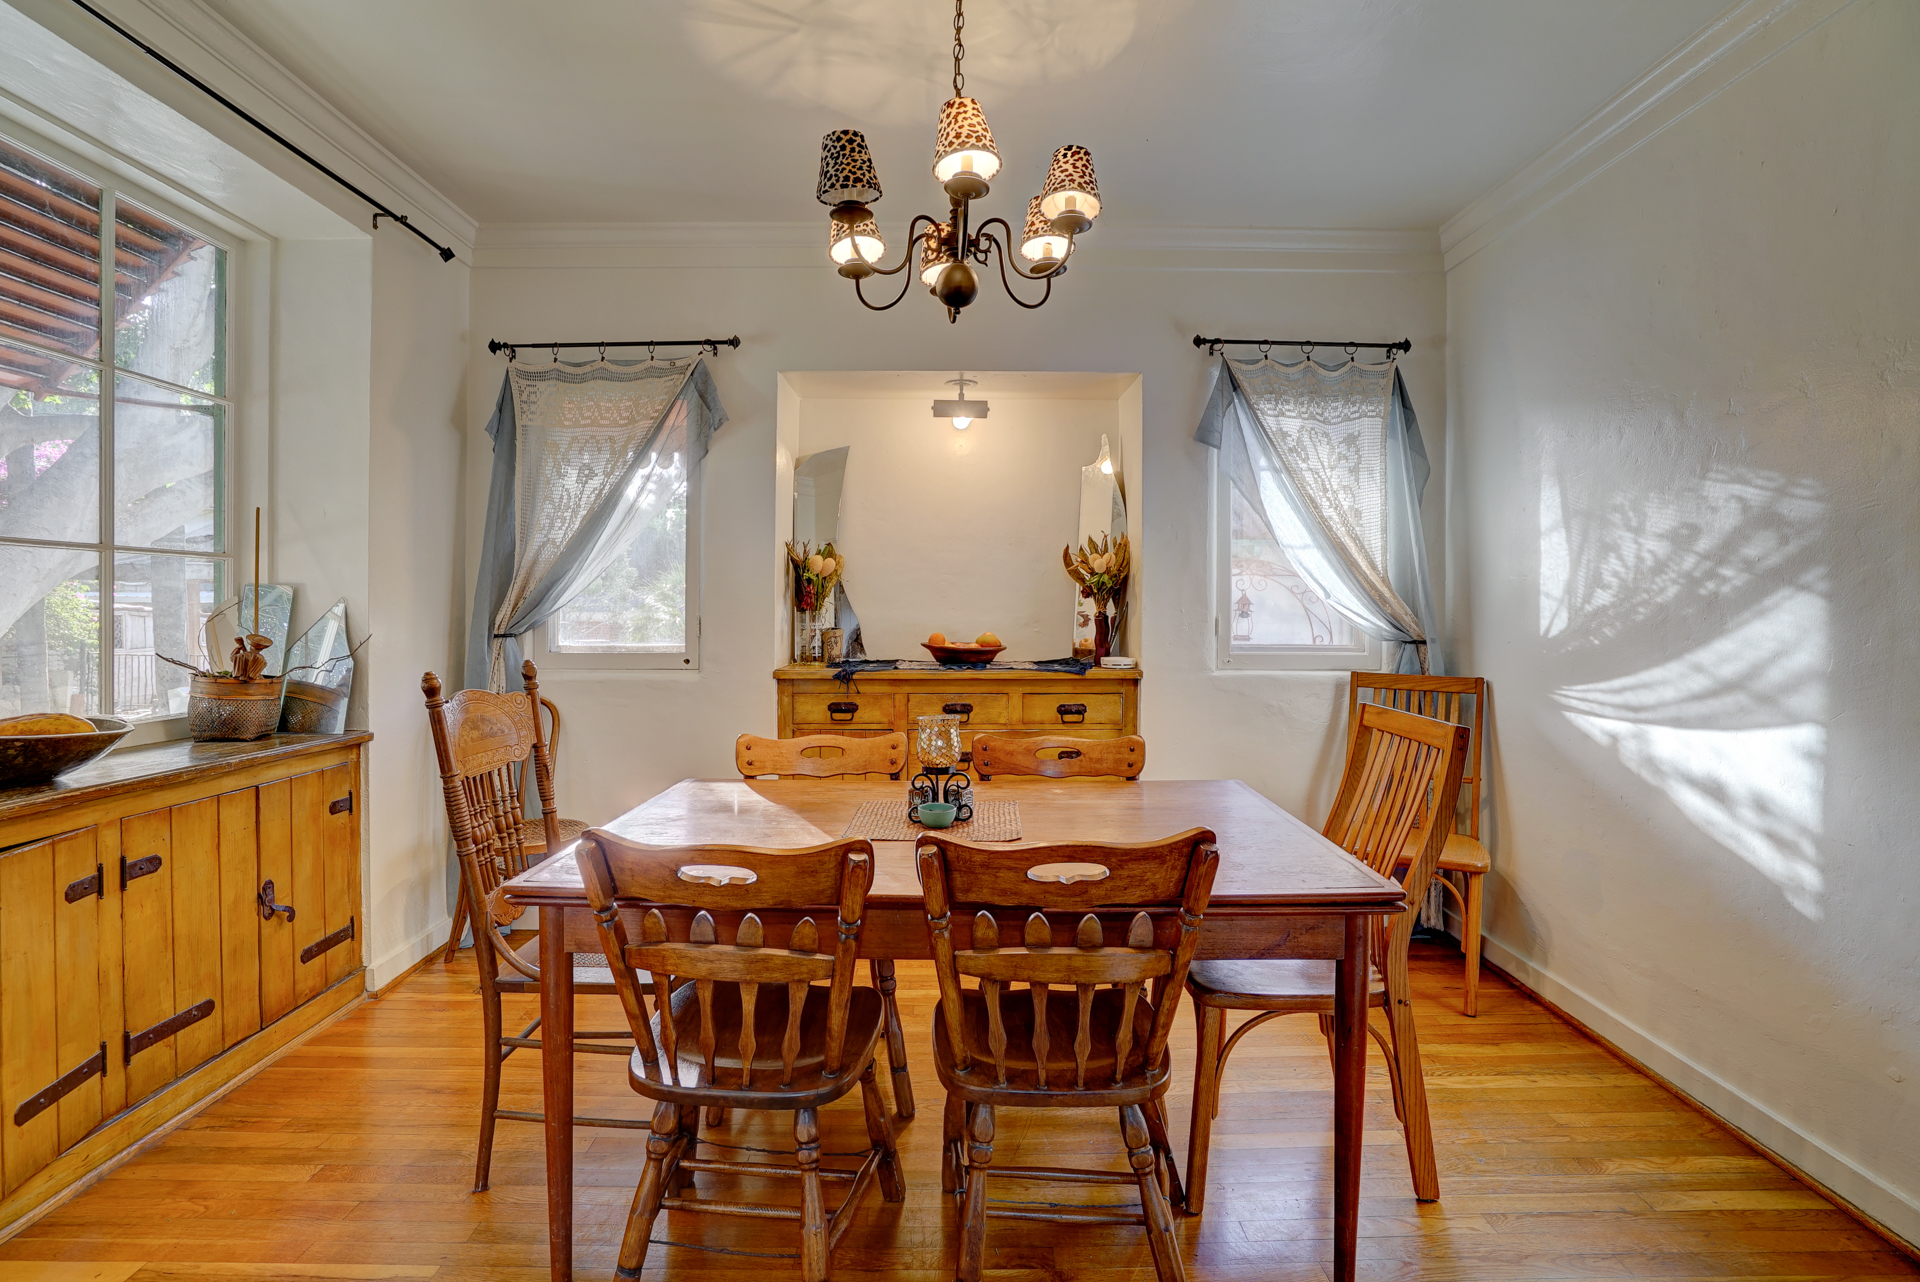 Formal dining room with built-in corner hutch (out of view).